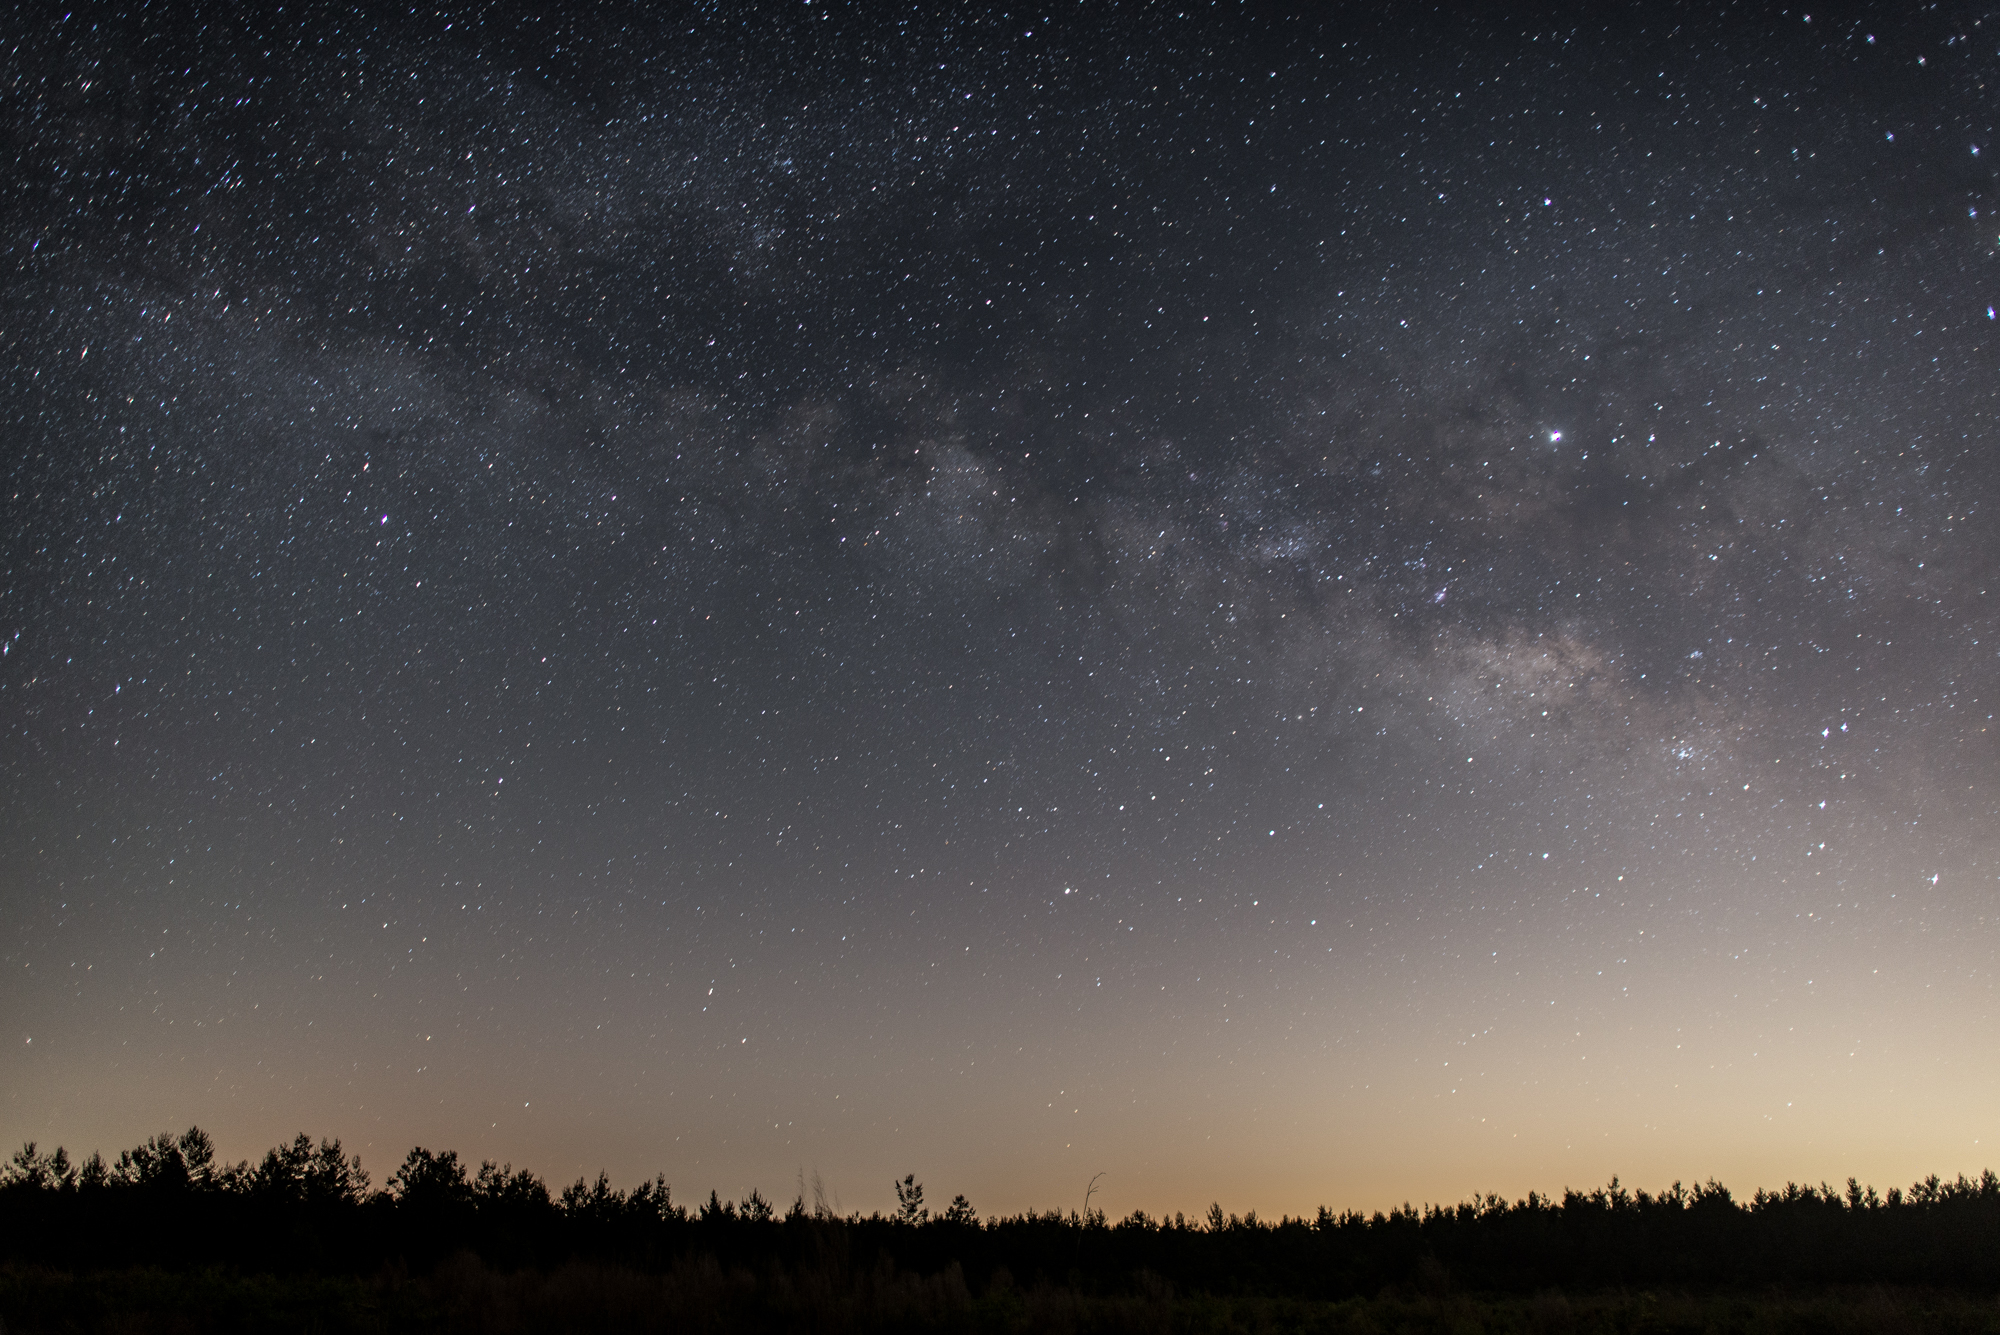 The Milky Way rises above the Juniper Prairie Wilderness in the Ocala National Forest. Shot details: Nikon D610, 24mm f/1.4